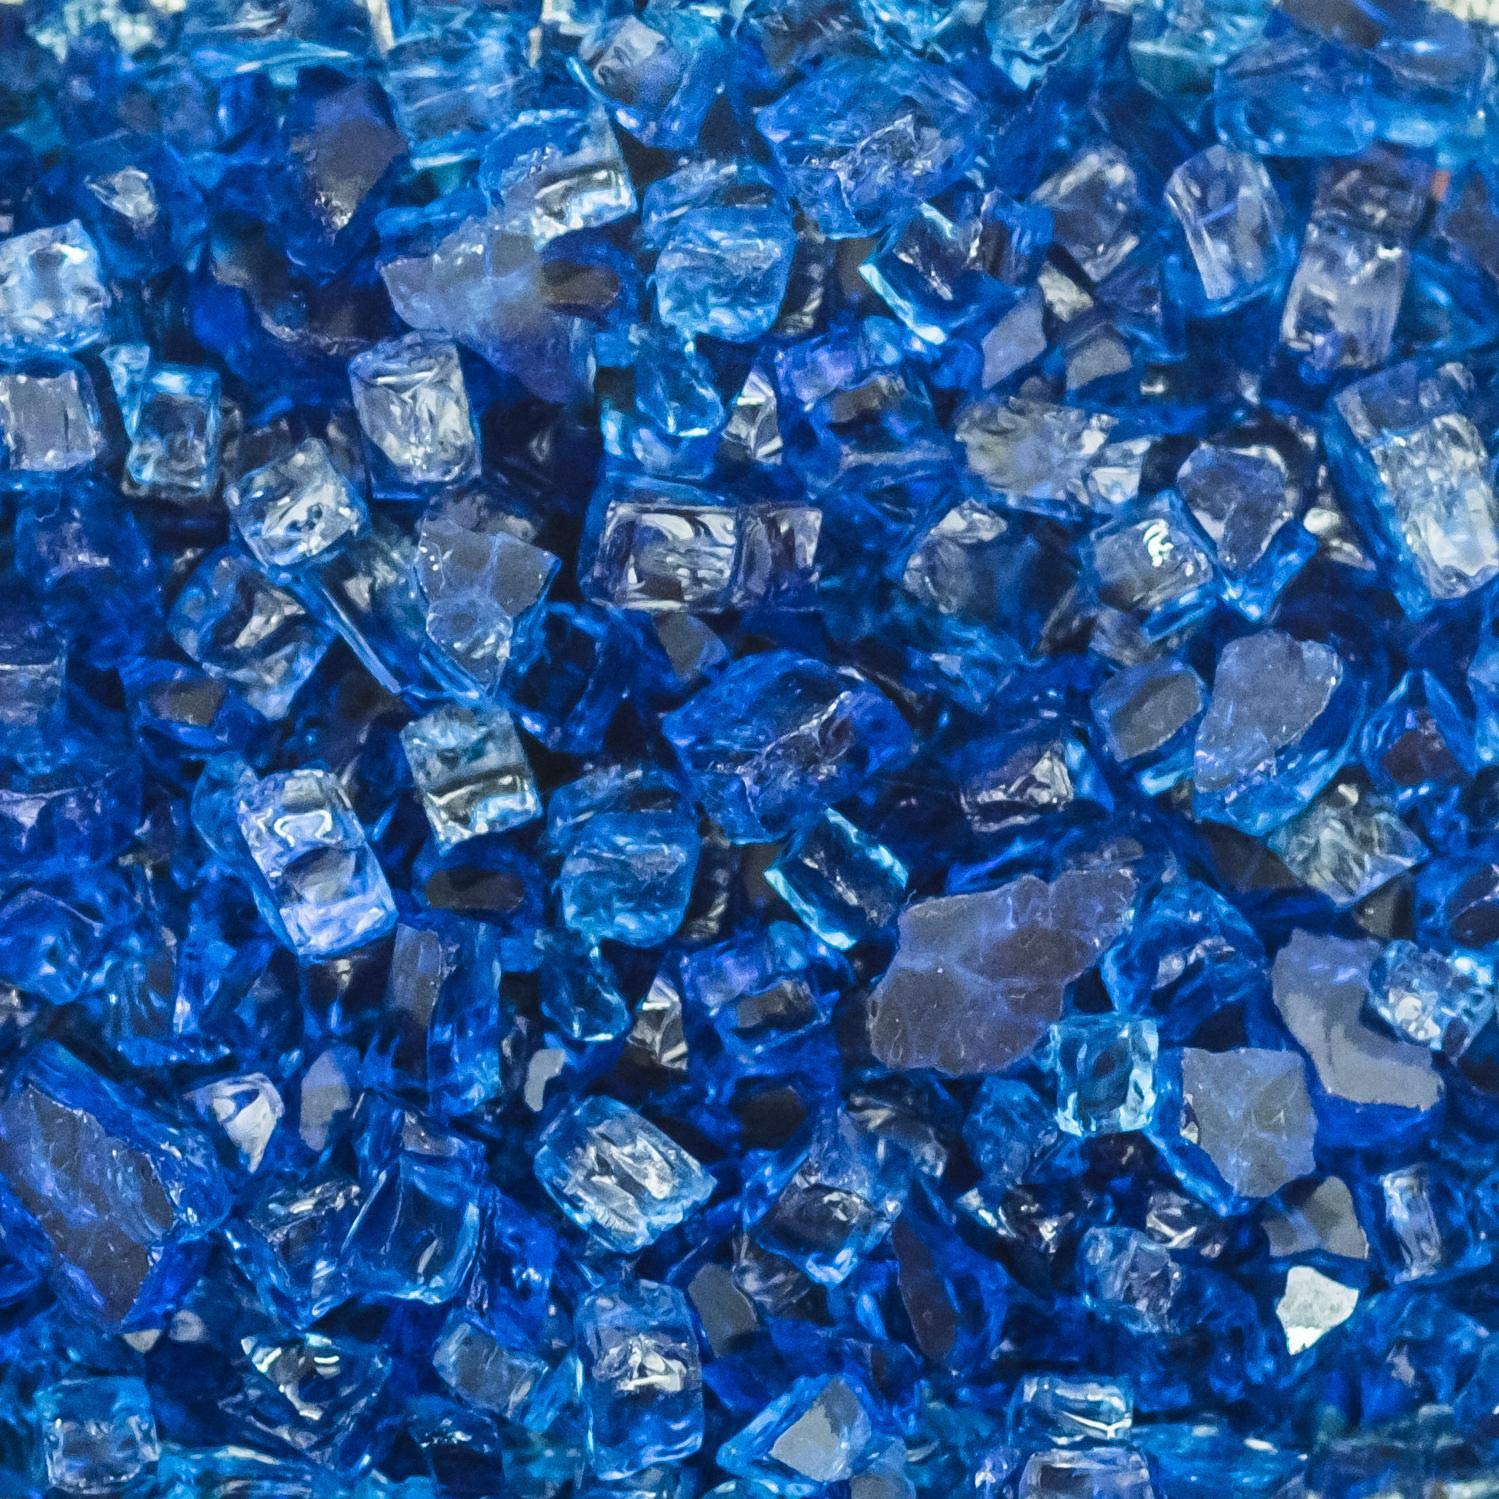 Lakeview Outdoor Designs 1/2-Inch Blue-Jay Fire Glass - 1 Pound